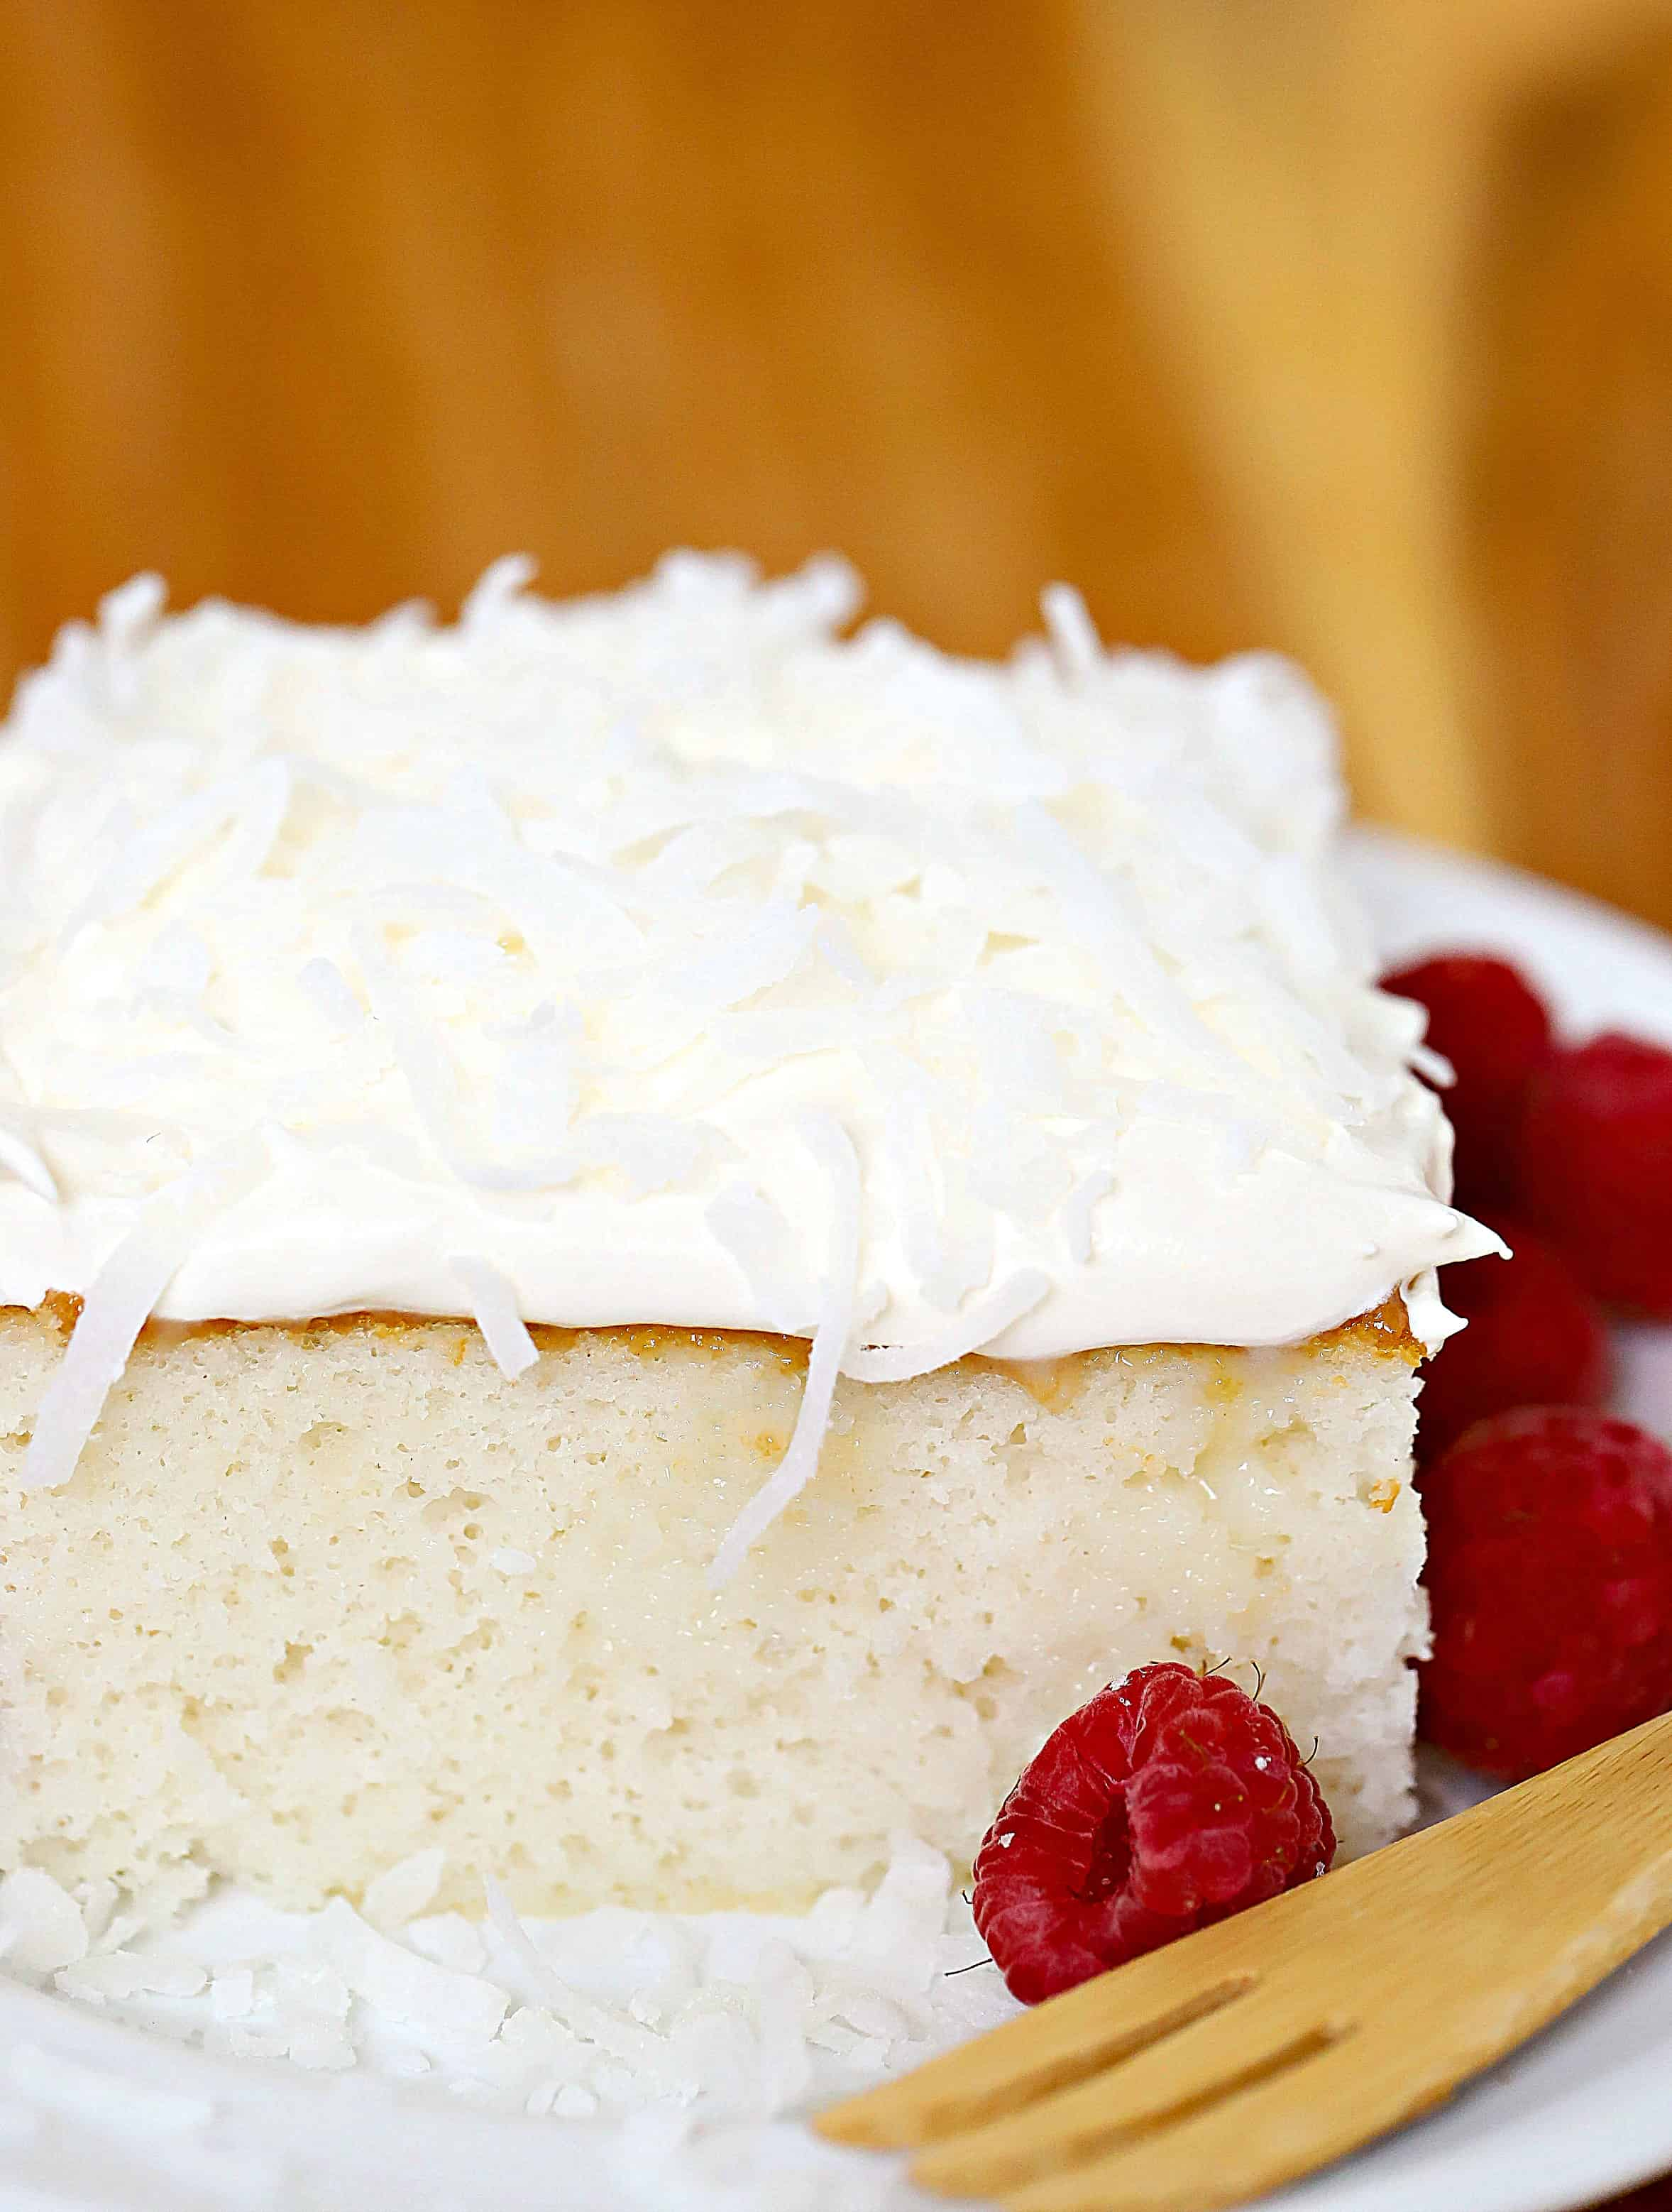 Close up of a square slice of cake topped with whipped cream and coconut and a side of raspberries.